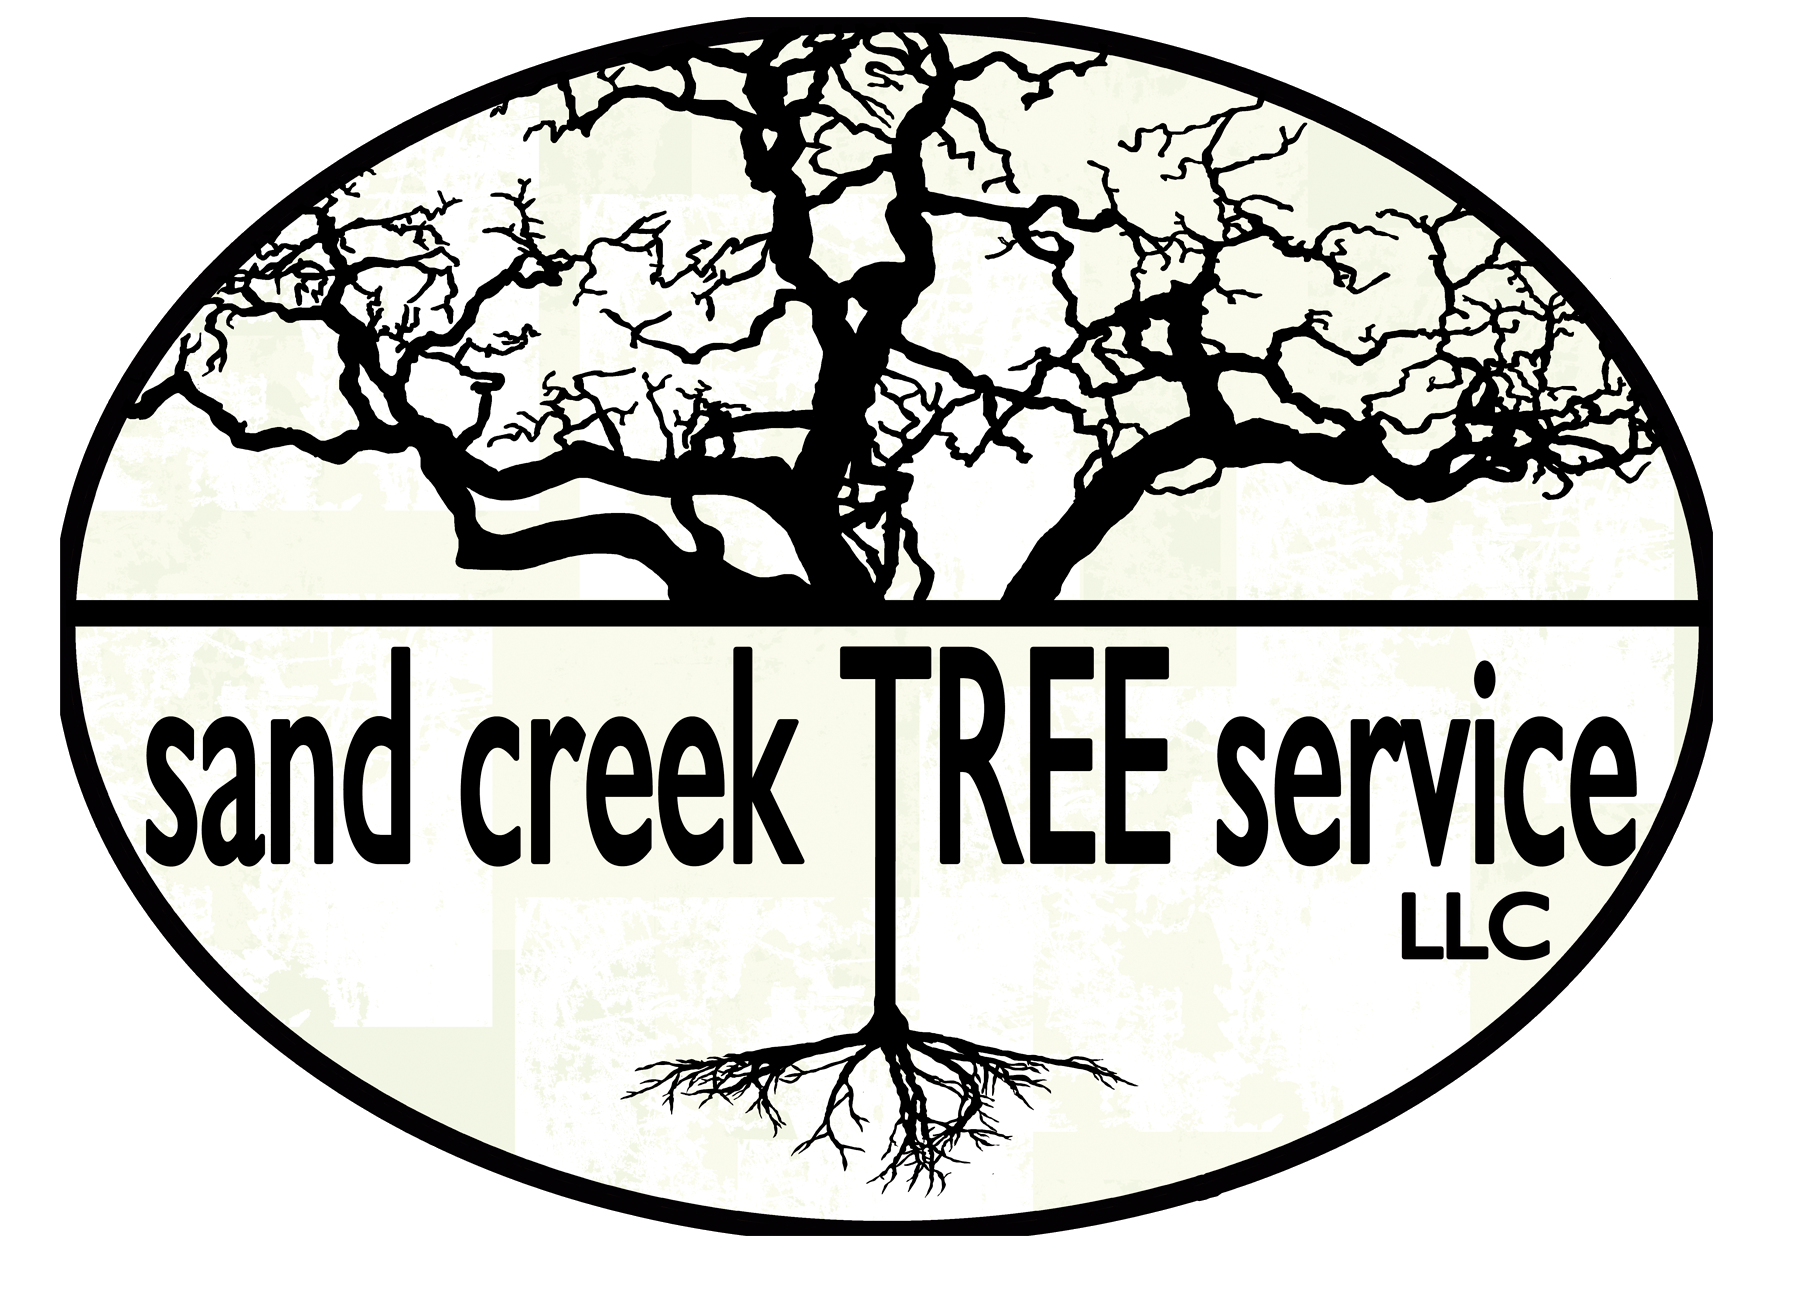 Sand Creek Tree Service